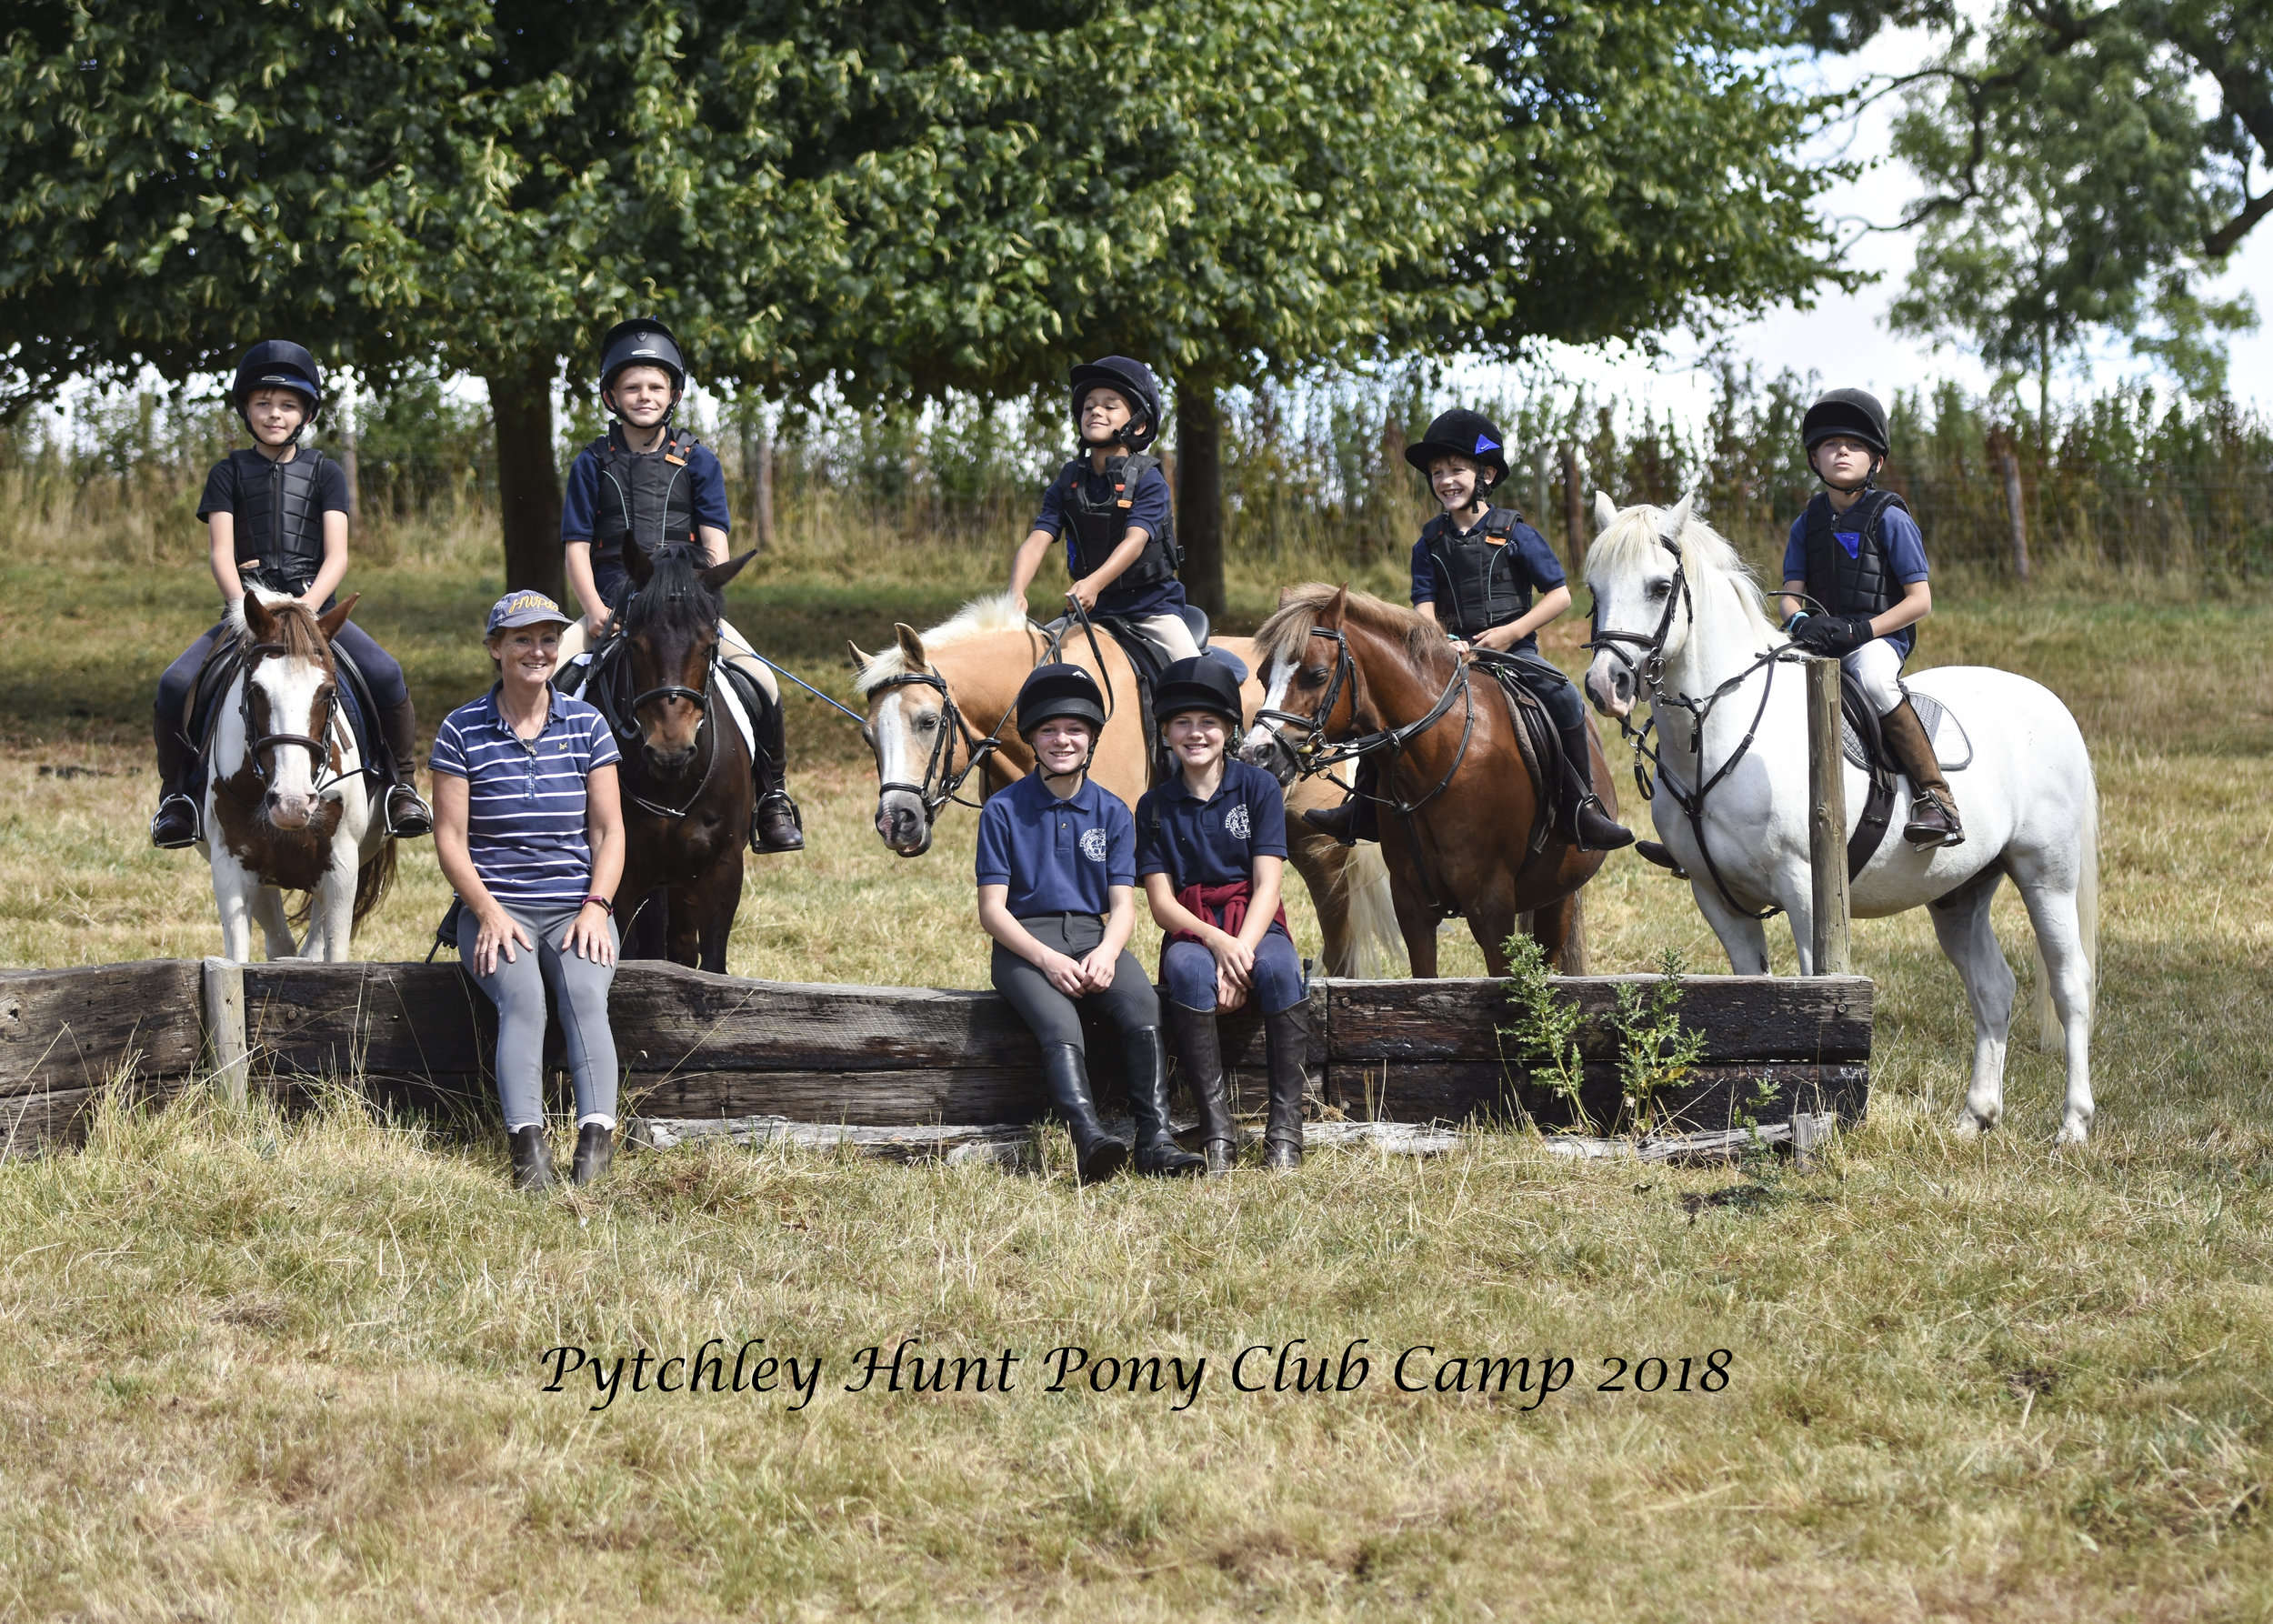 Pytchley Hunt Junior Camp 2018